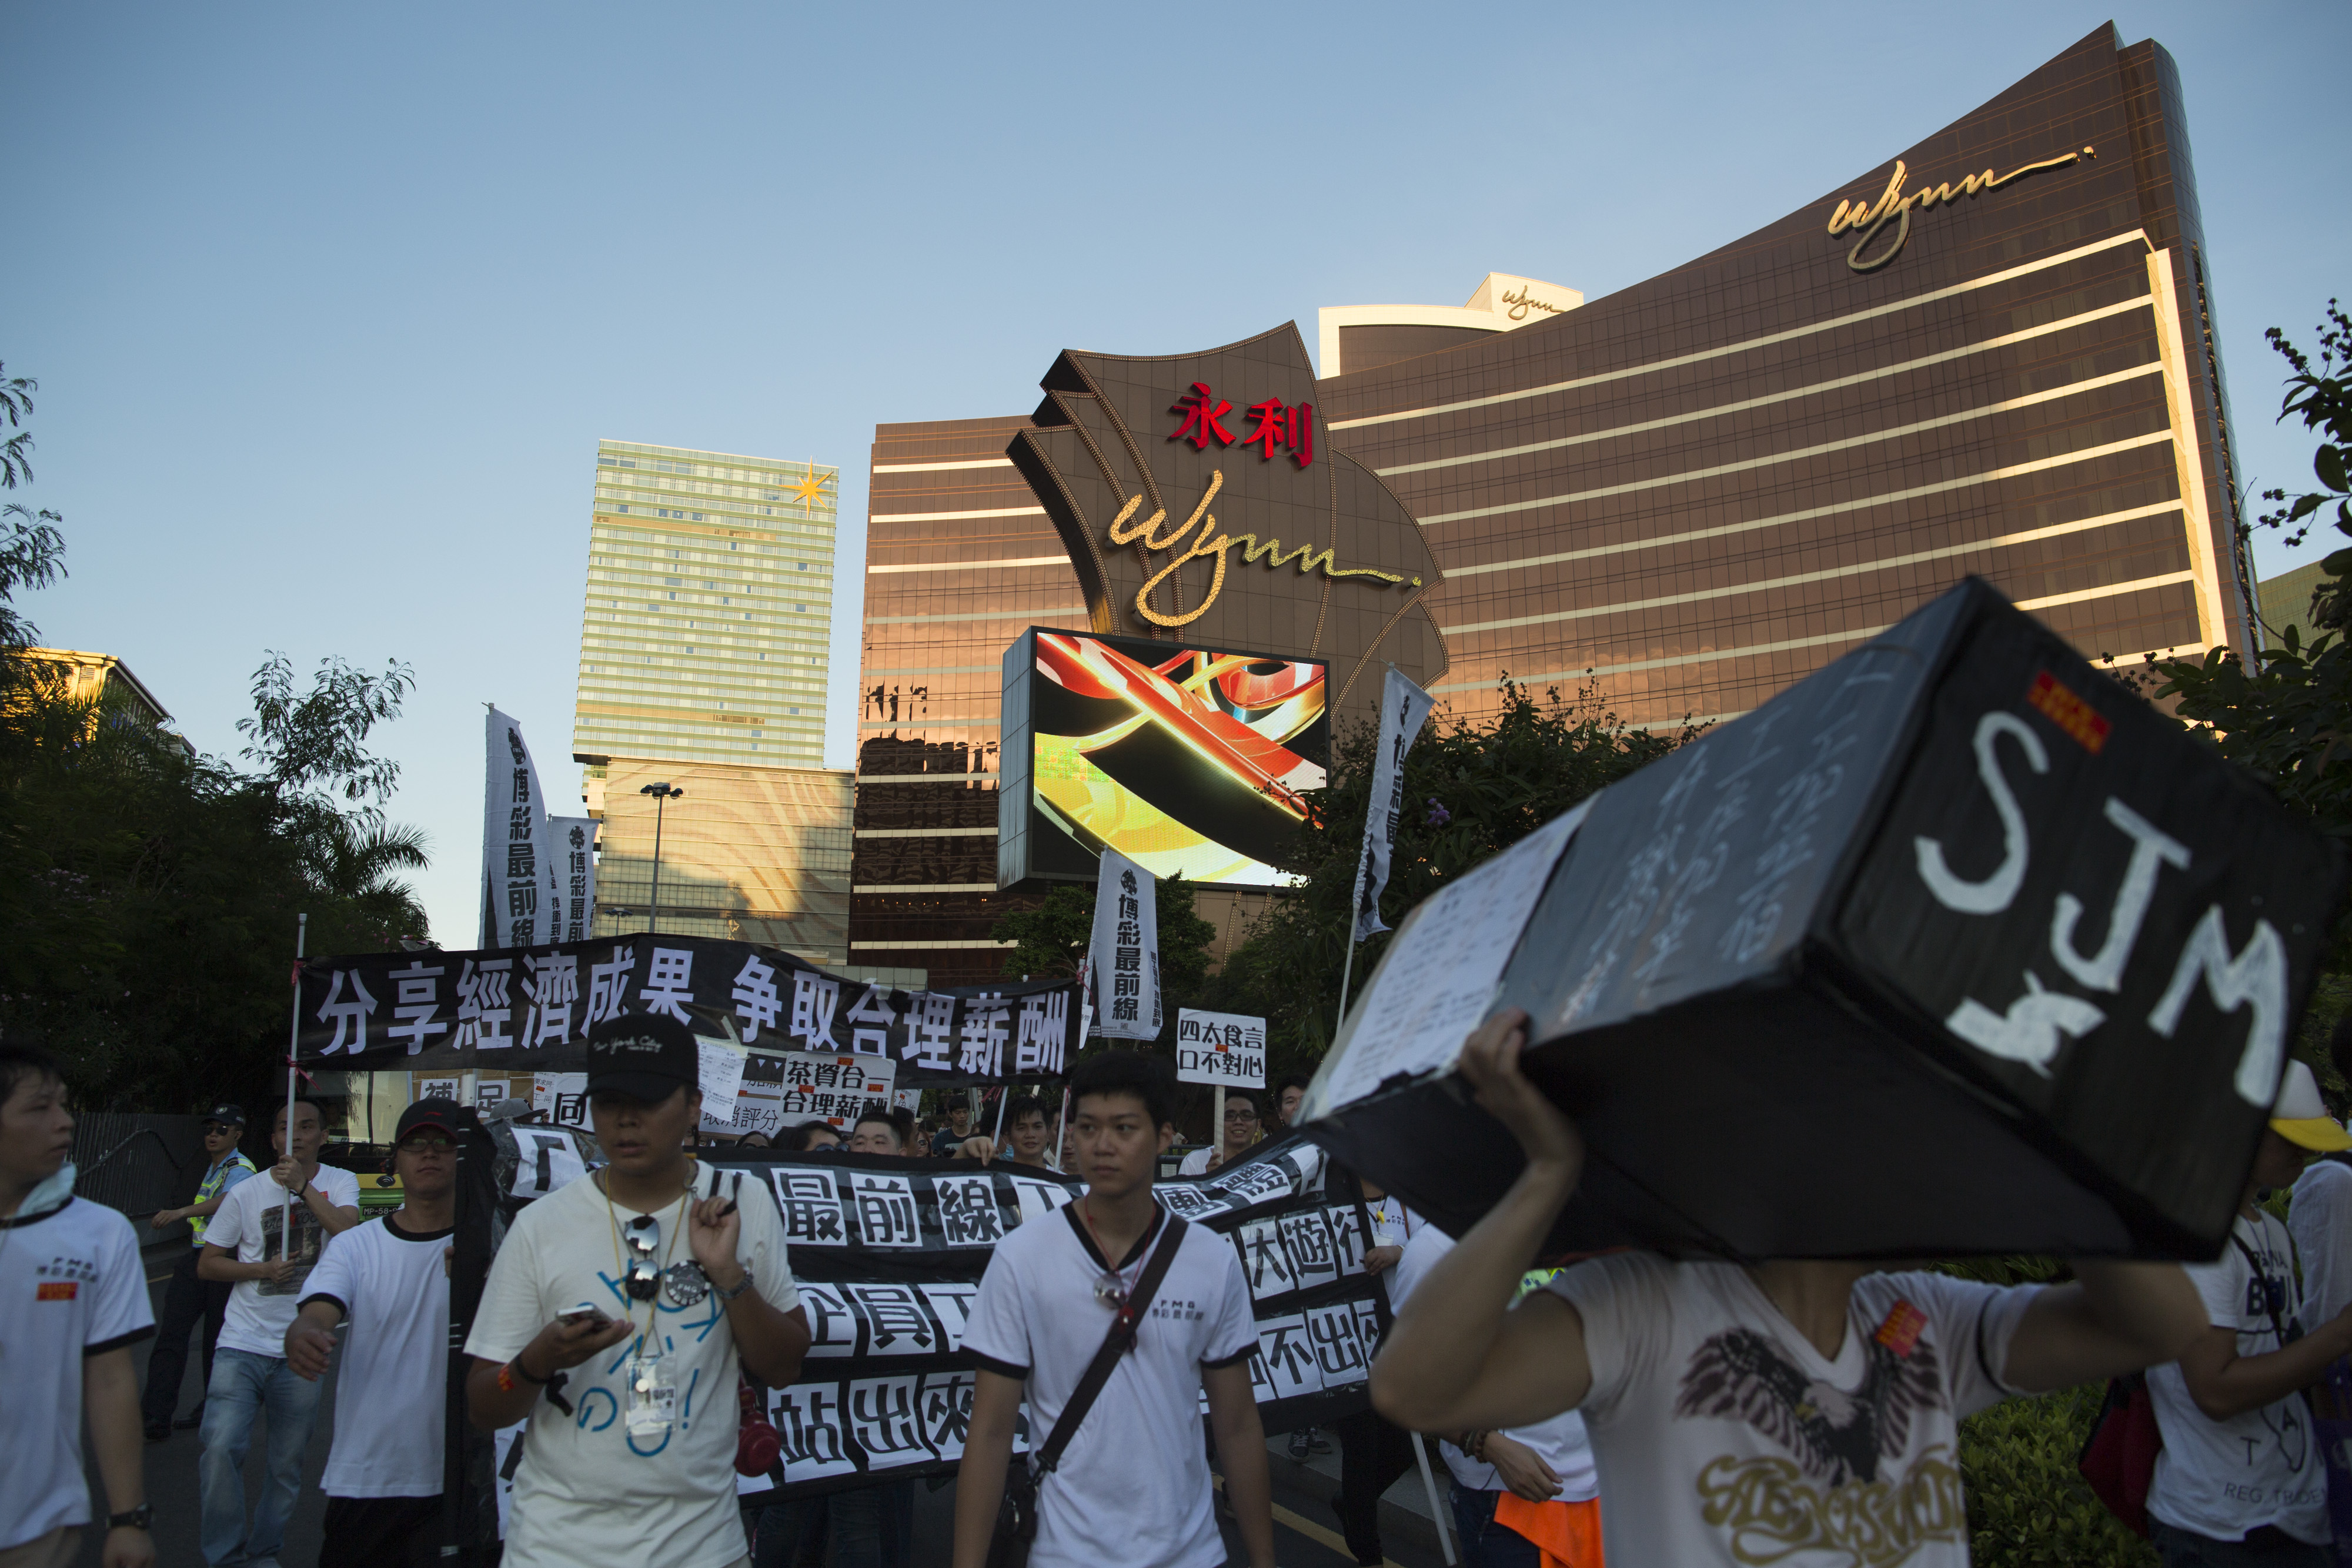 SJM gaming workers protest in front of the Wynn Macau casino resort in Macau on Aug. 25, 2014